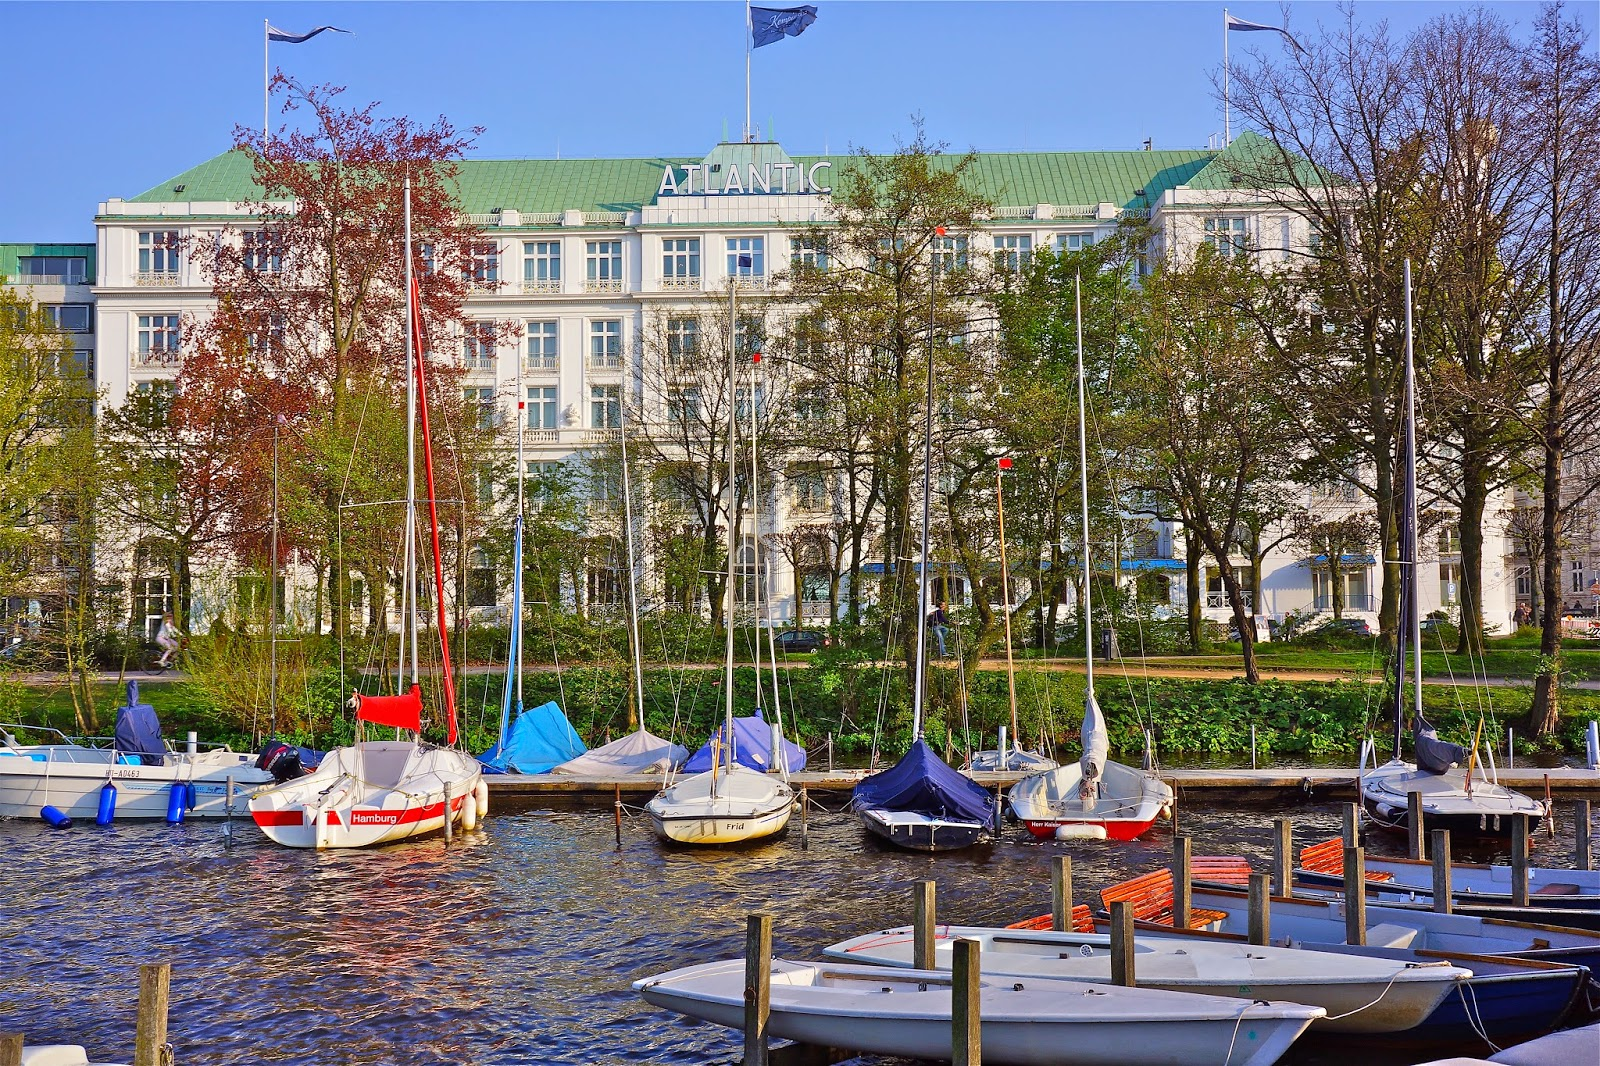 Picture of Atlantic Kempinski Hotel in Hamburg, Germany.